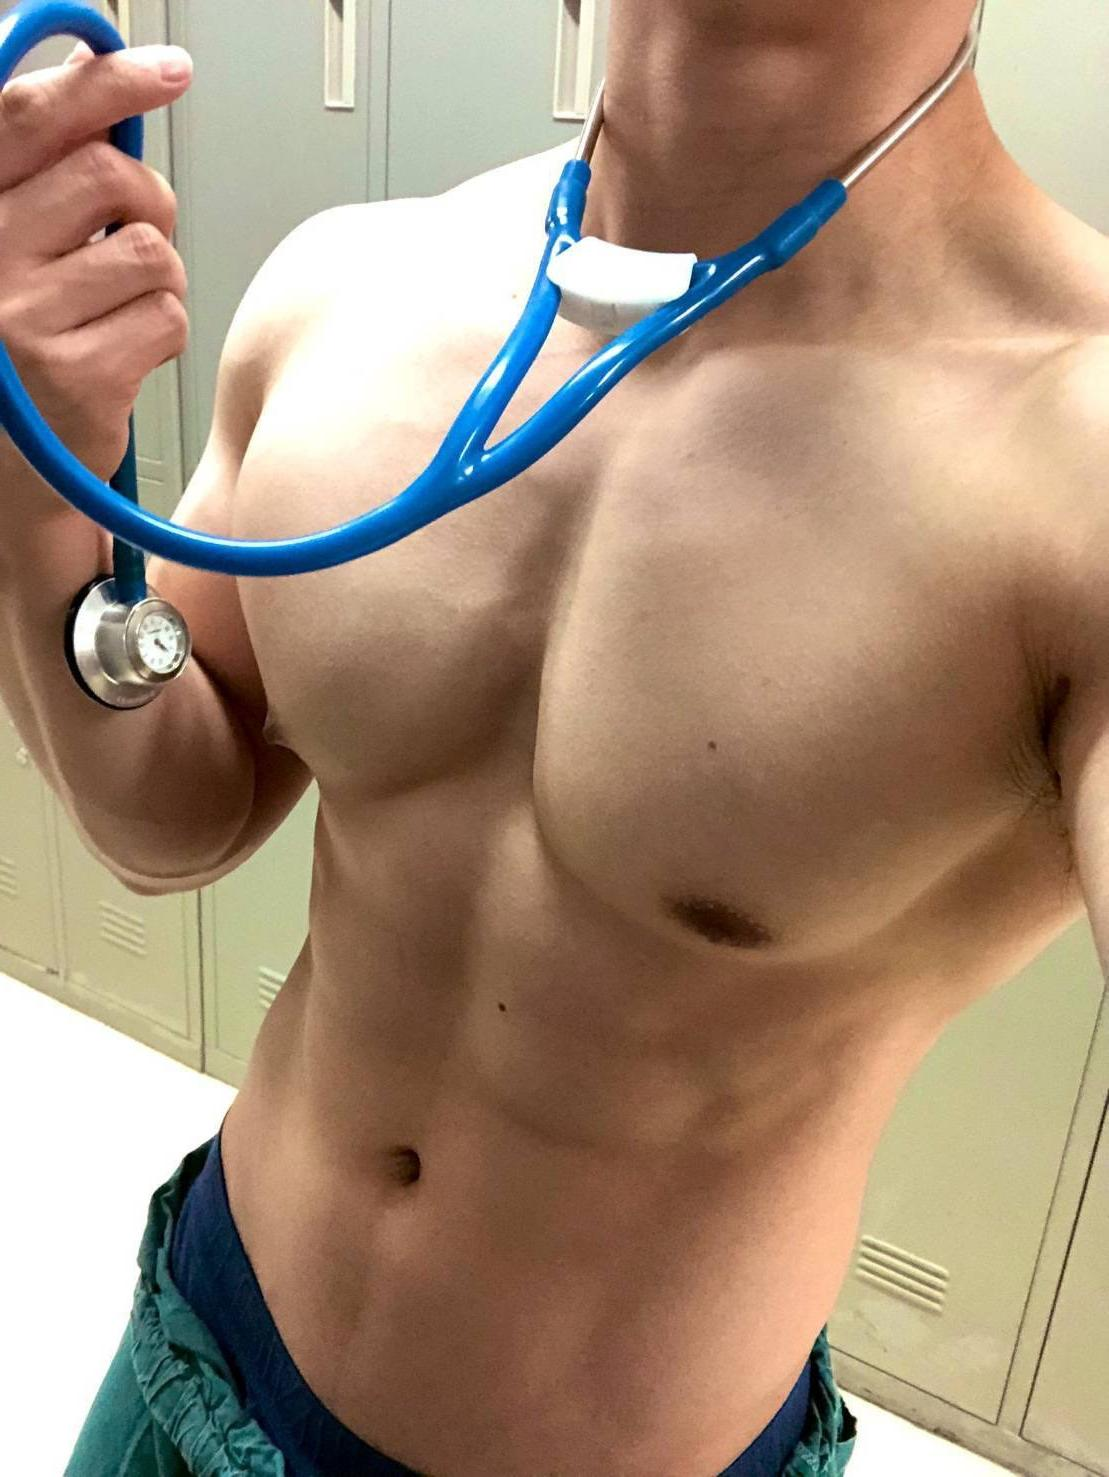 sexy-shirtless-male-nurse-soap-hunky-doctor-nipples-pecs